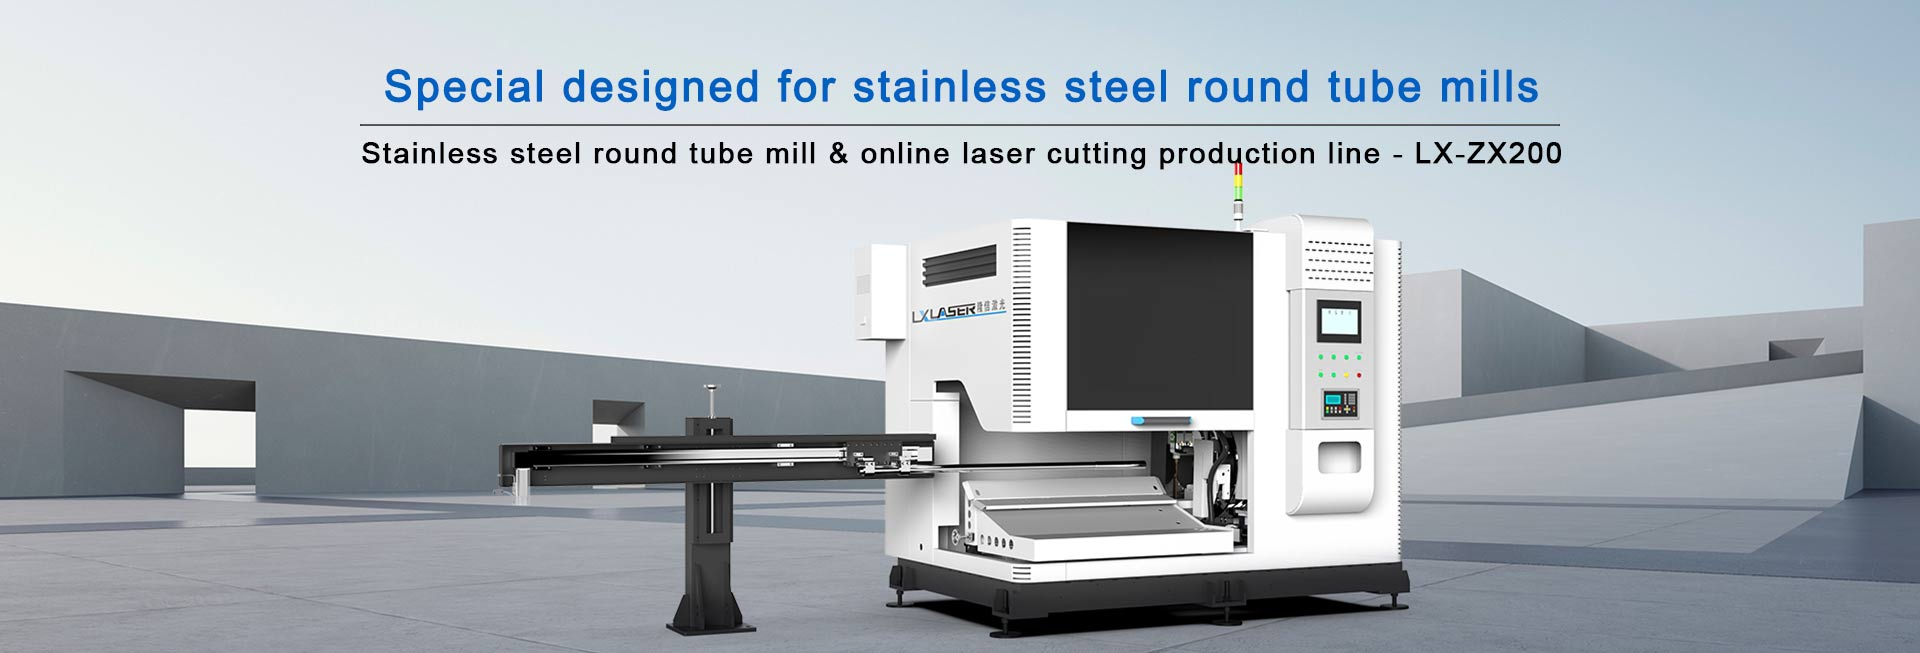 Stainless steel round tube mill & online laser cutting production line